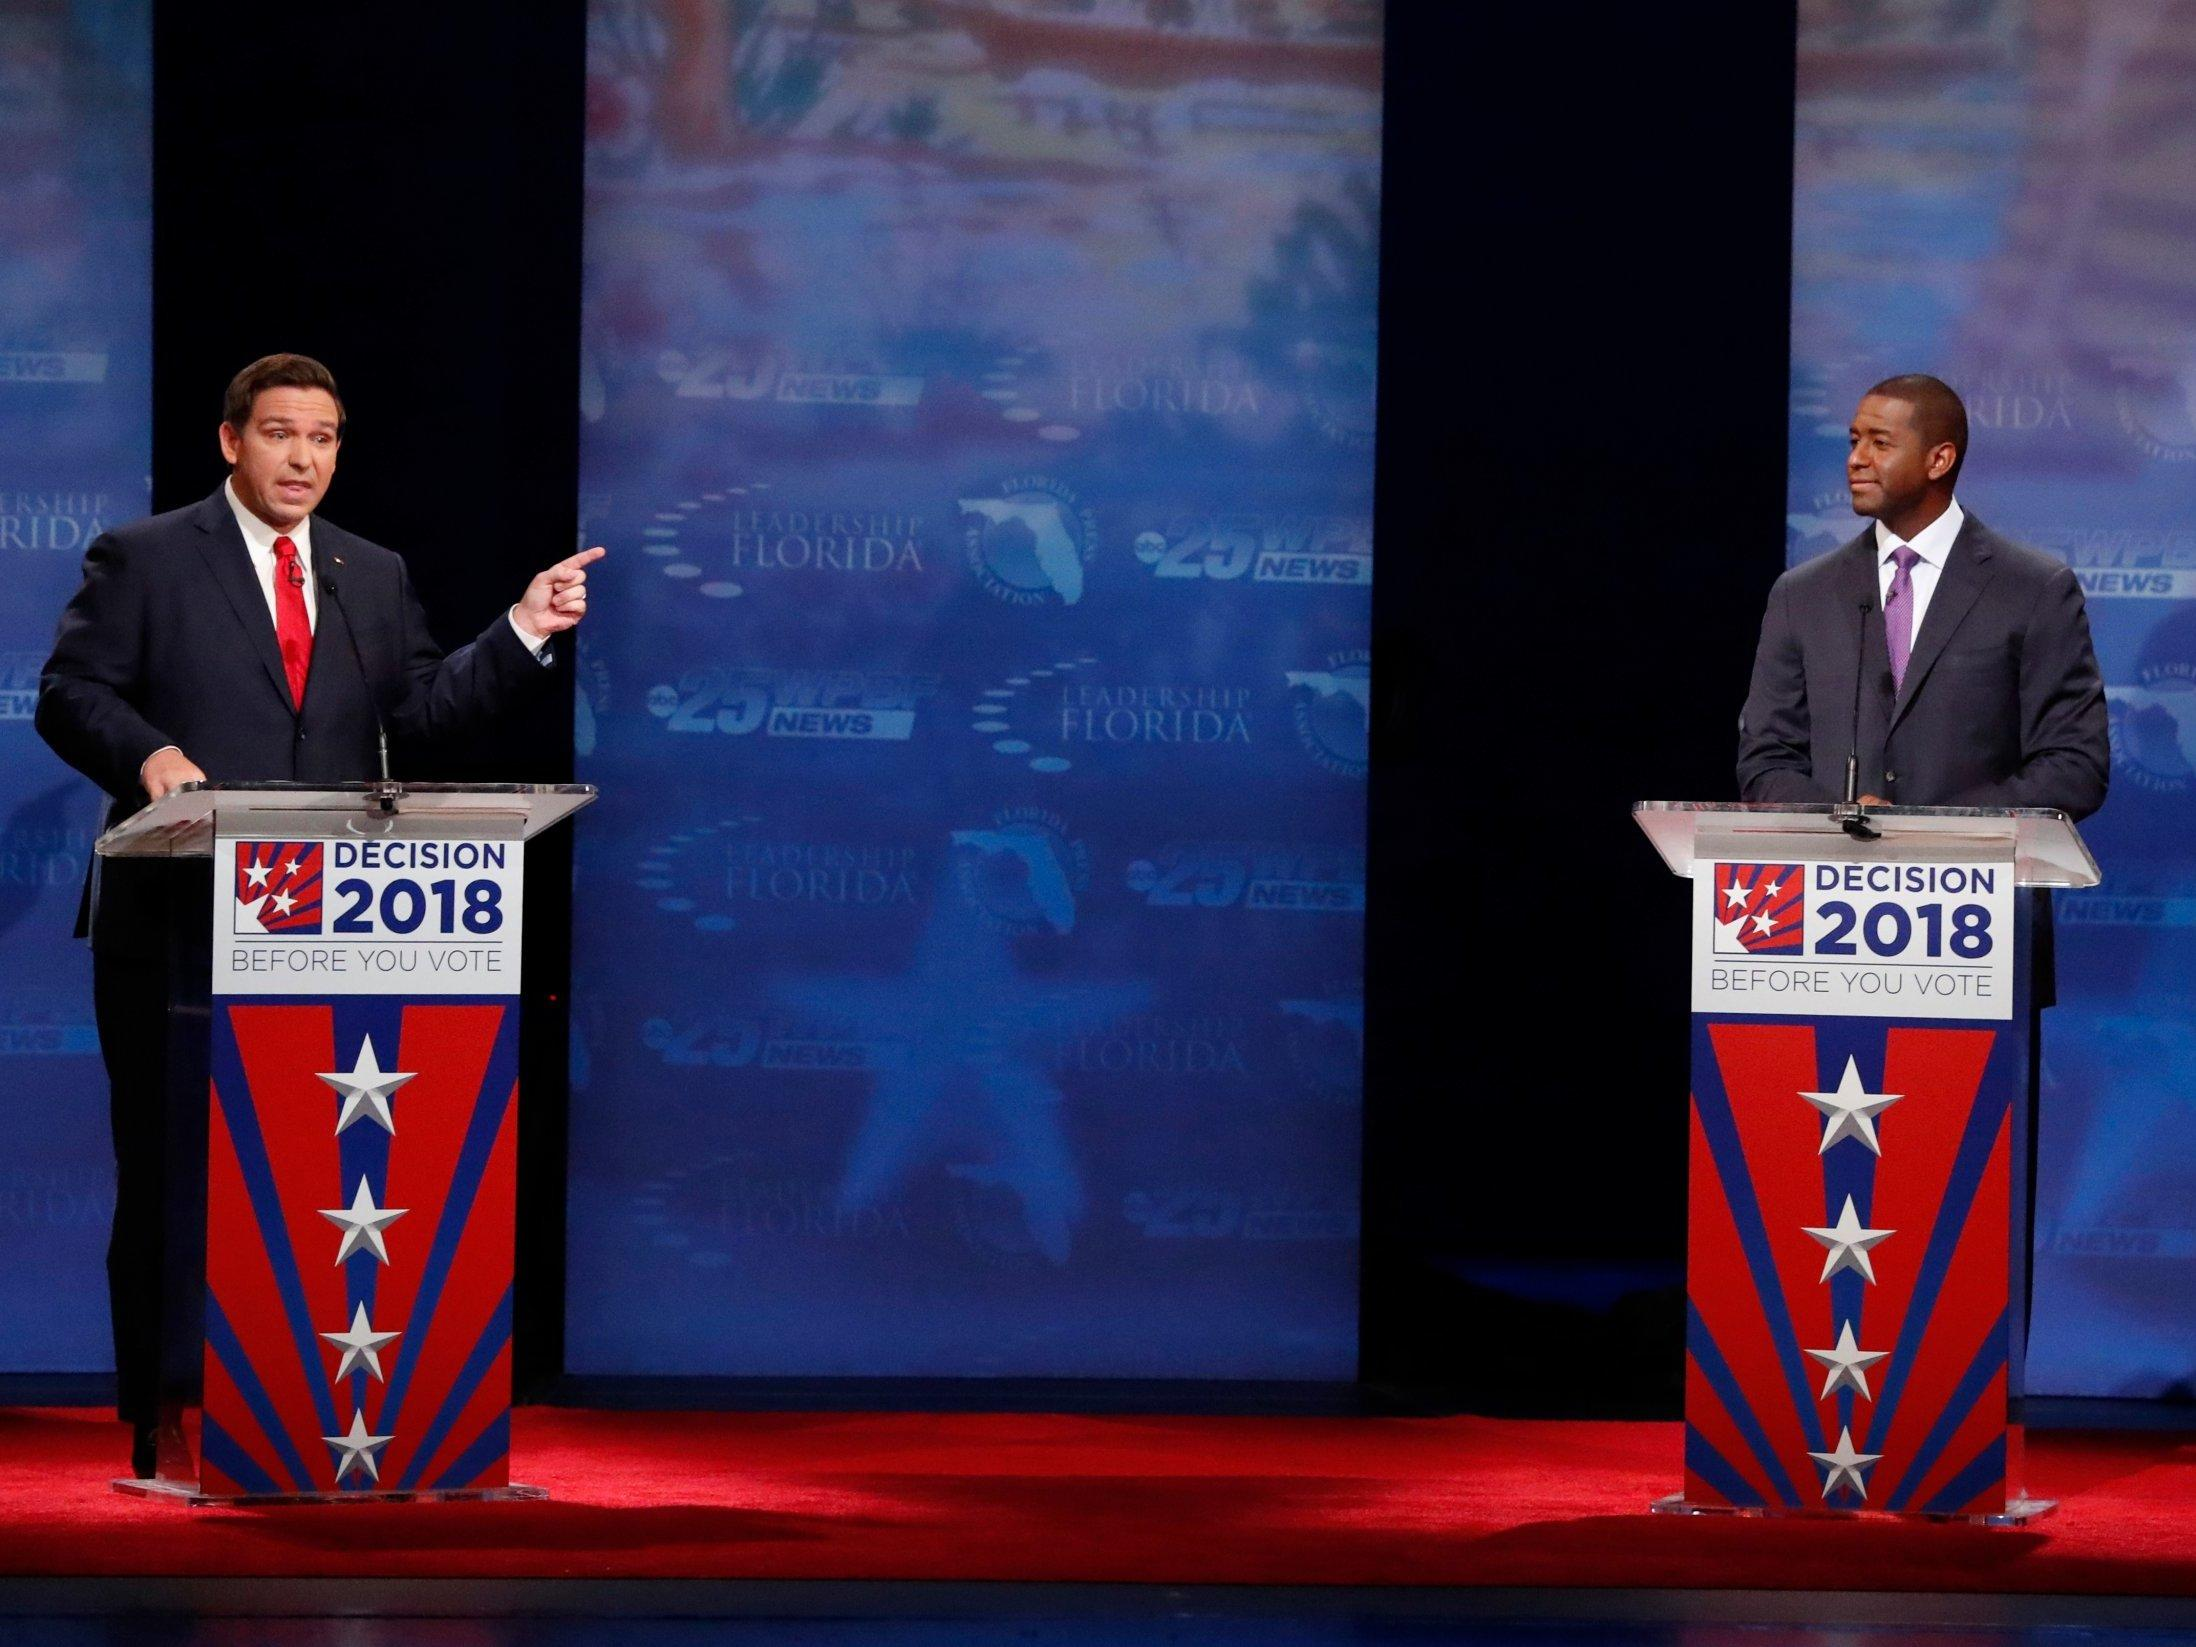 Florida governor debate: Gillum and DeSantis exchange sharp personal attacks over racism, immigration and corruption as campaign gets nast